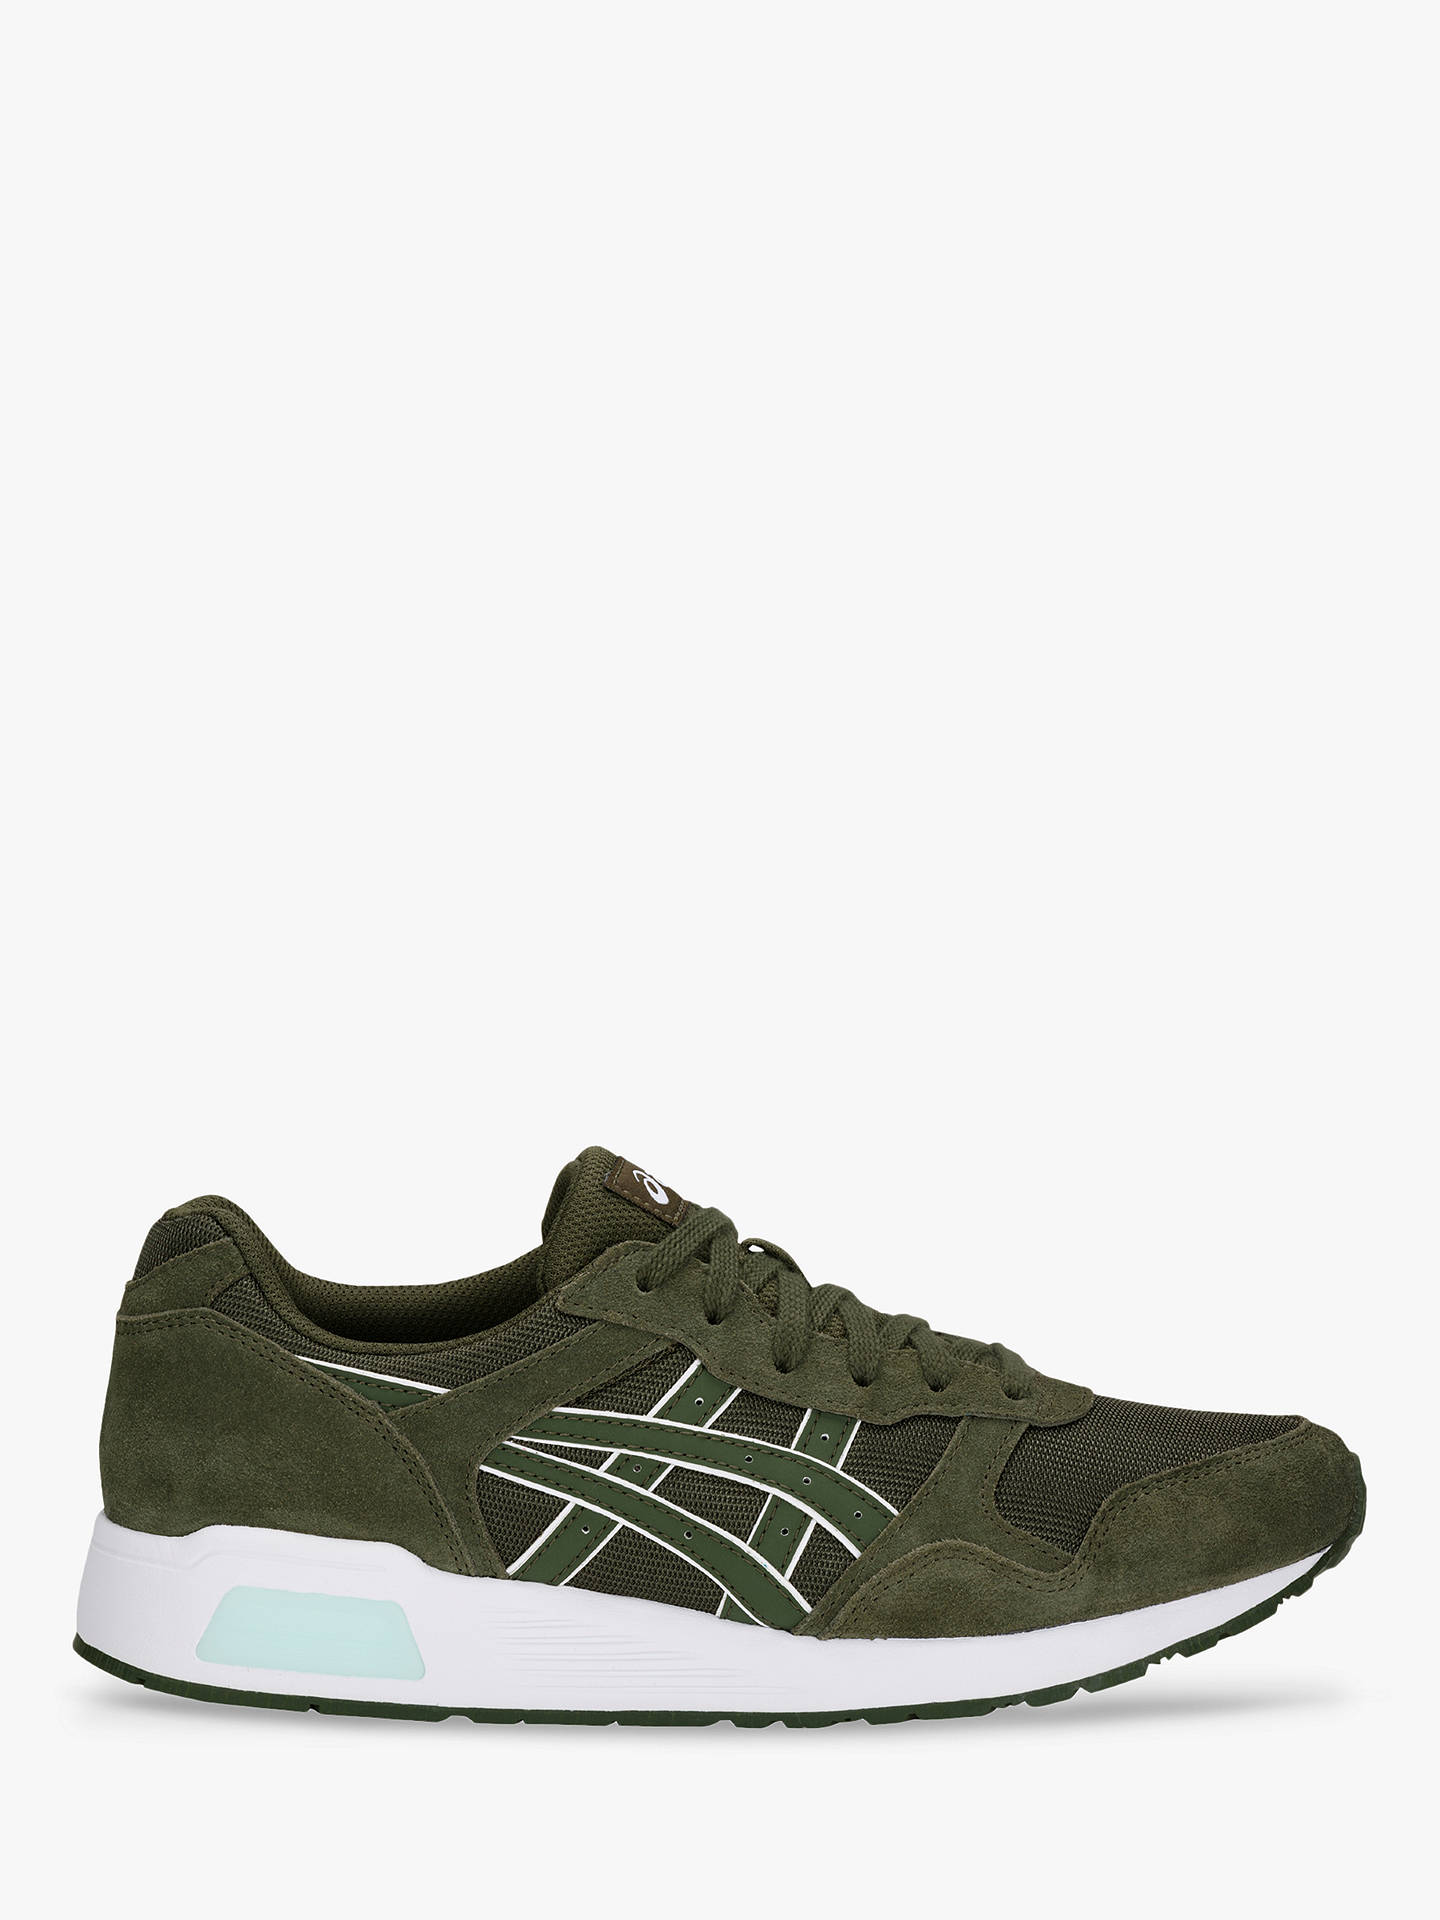 sale retailer ba9a2 cf1b0 ASICSTIGER LYTE Trainers, Forrest